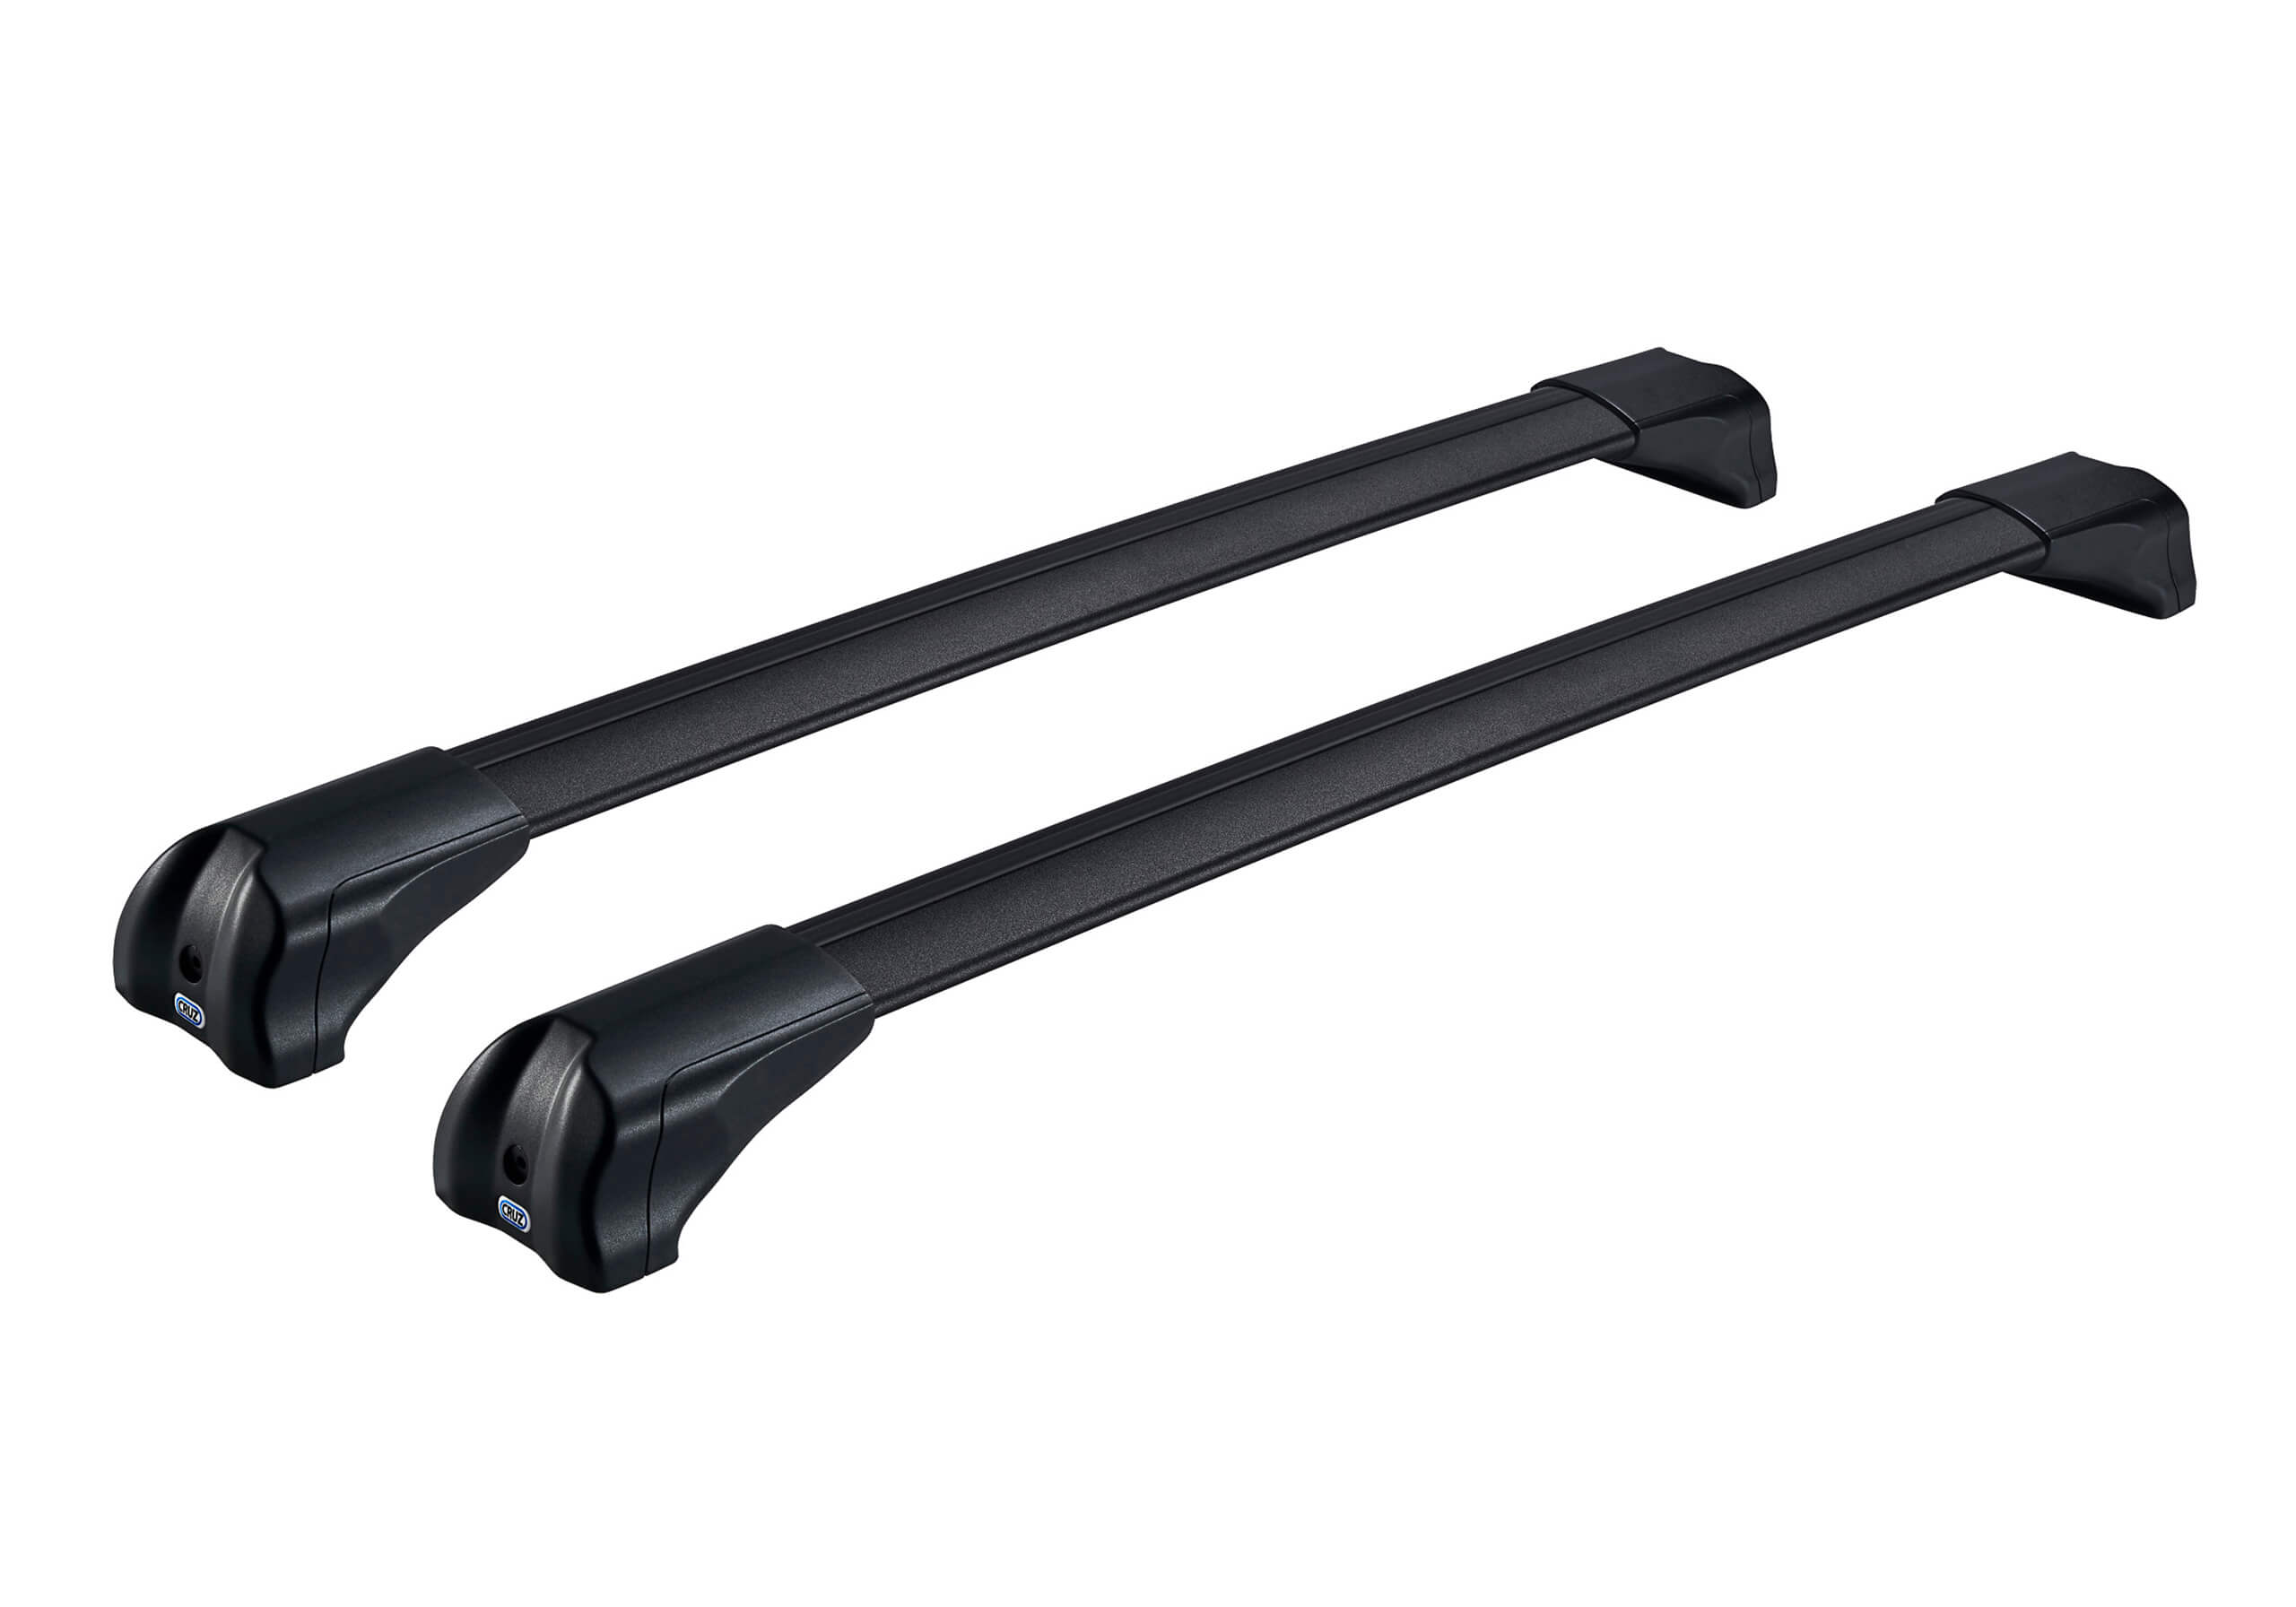 Skoda Fabia four door saloon (2000 to 2007):CRUZ Airo Fuse black aluminium roof bars with fitting kit 6002